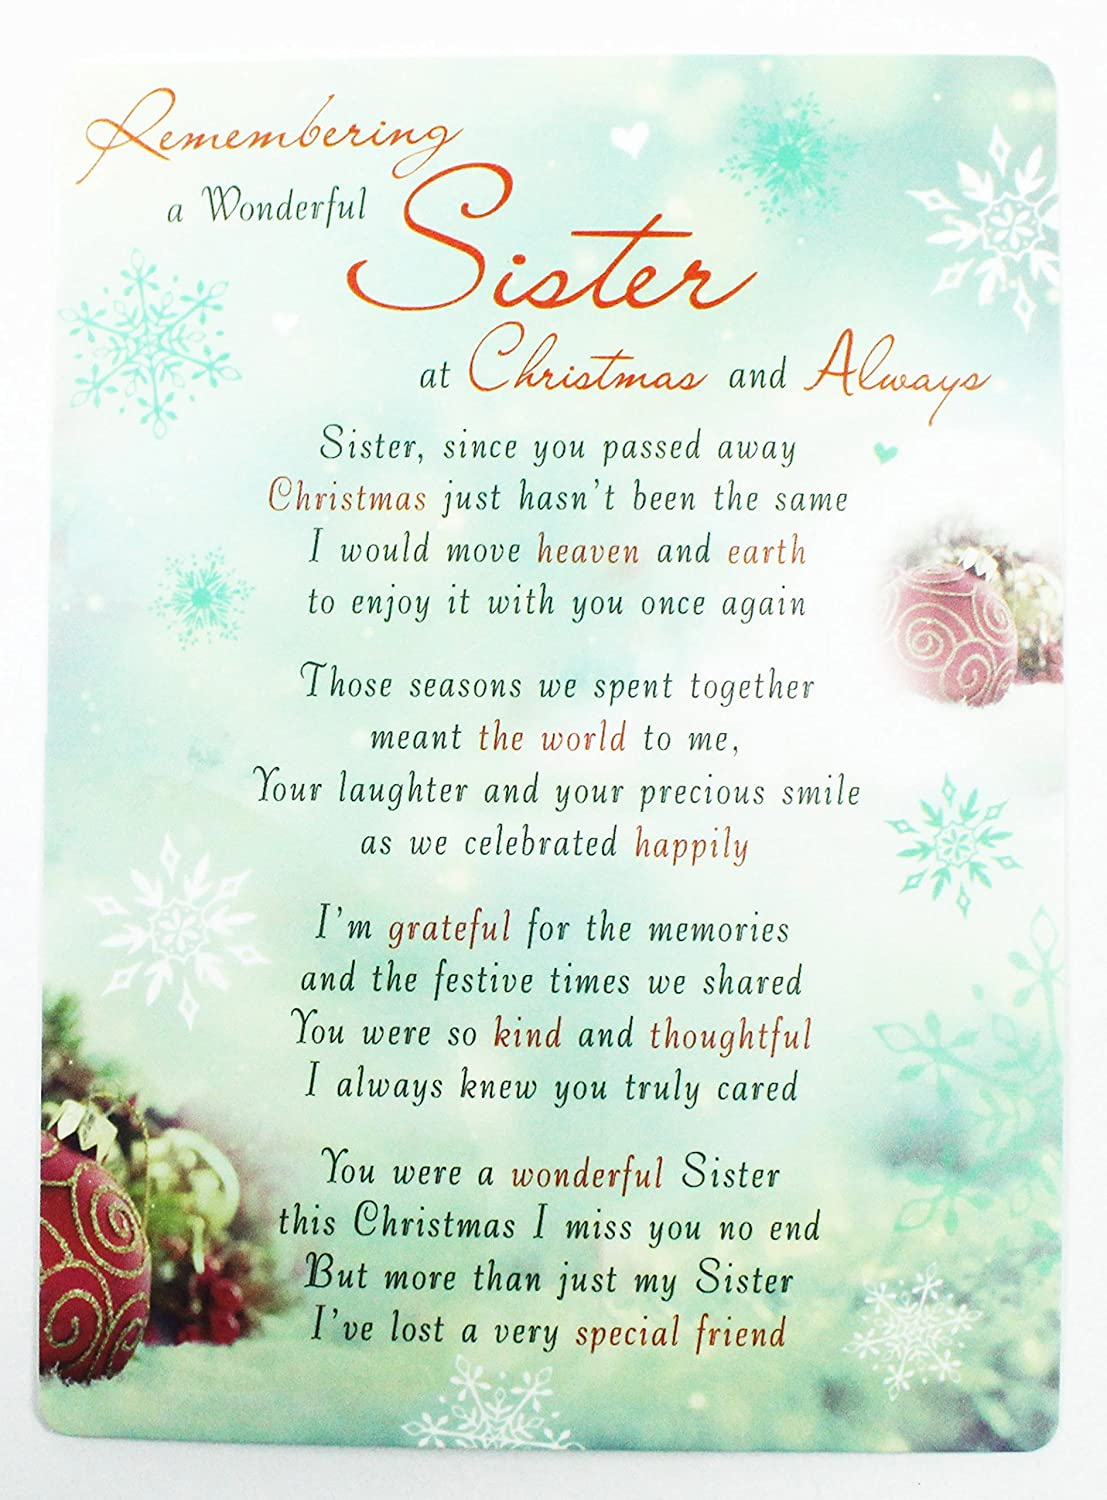 Christmas Memorial Card Graveside Poem Wonderful Sister Grave